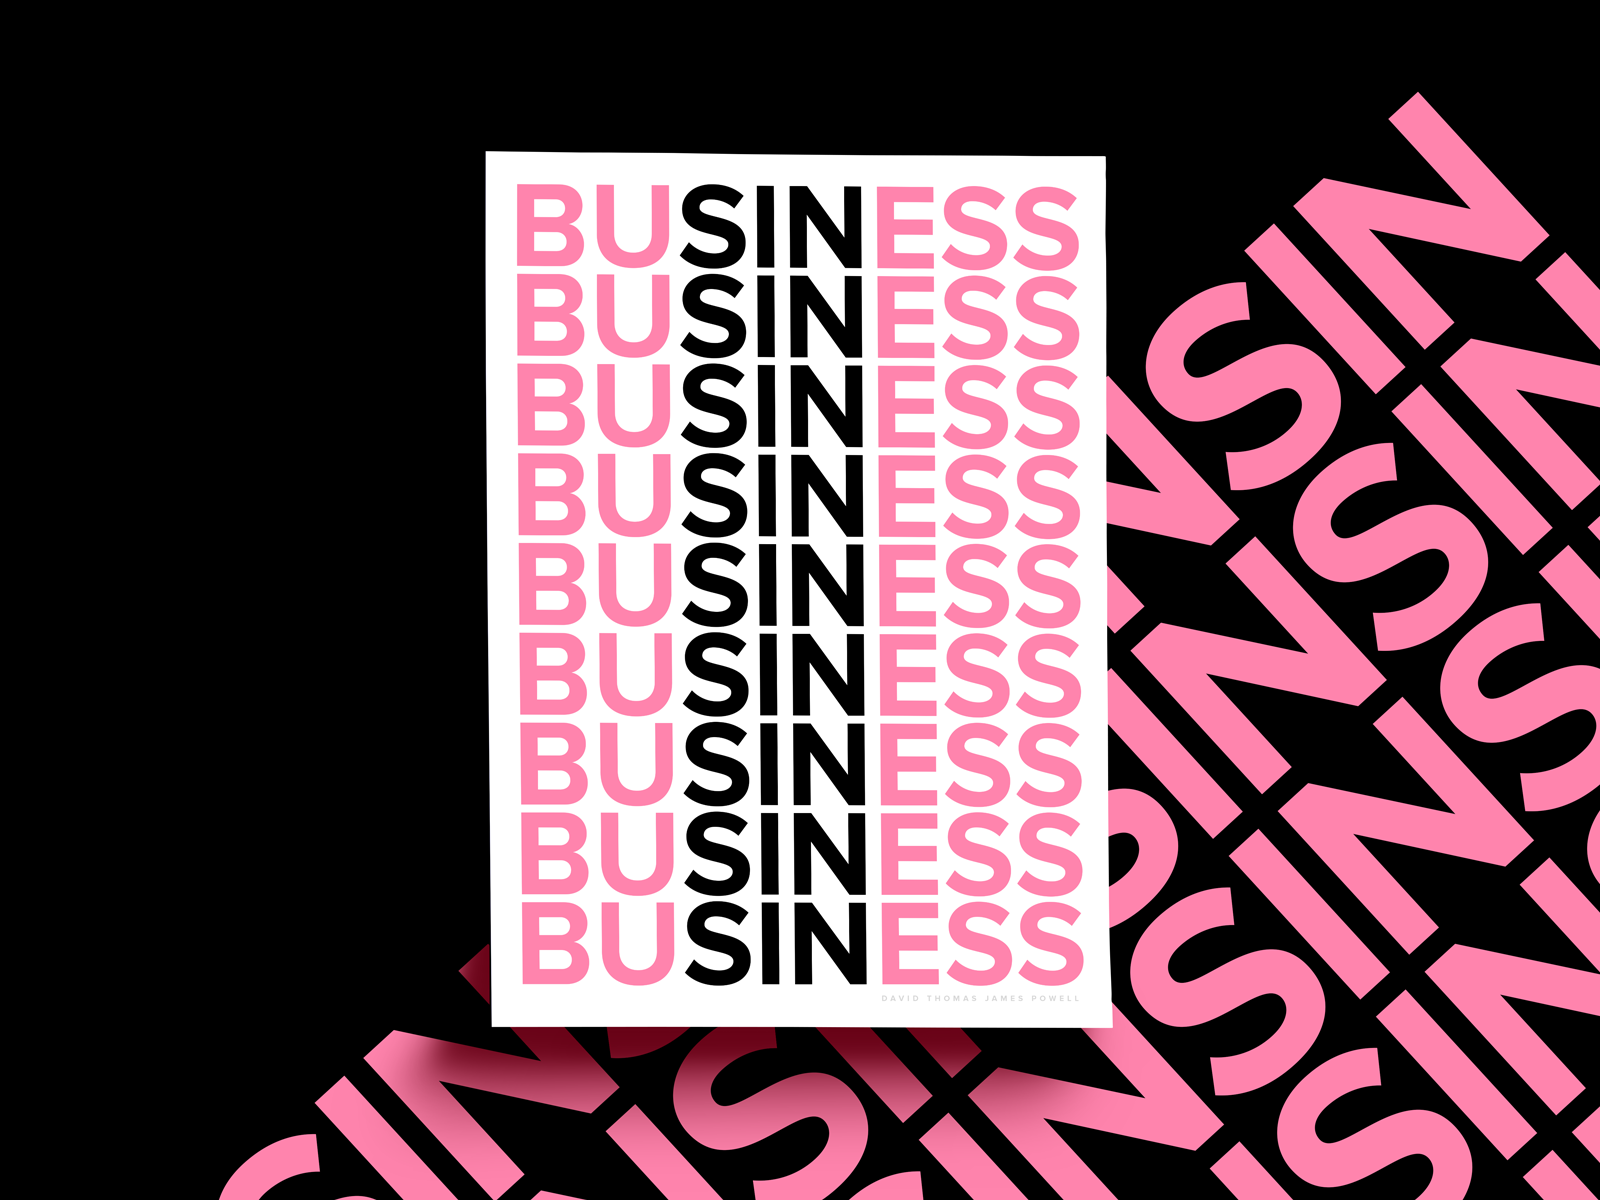 Business_1600